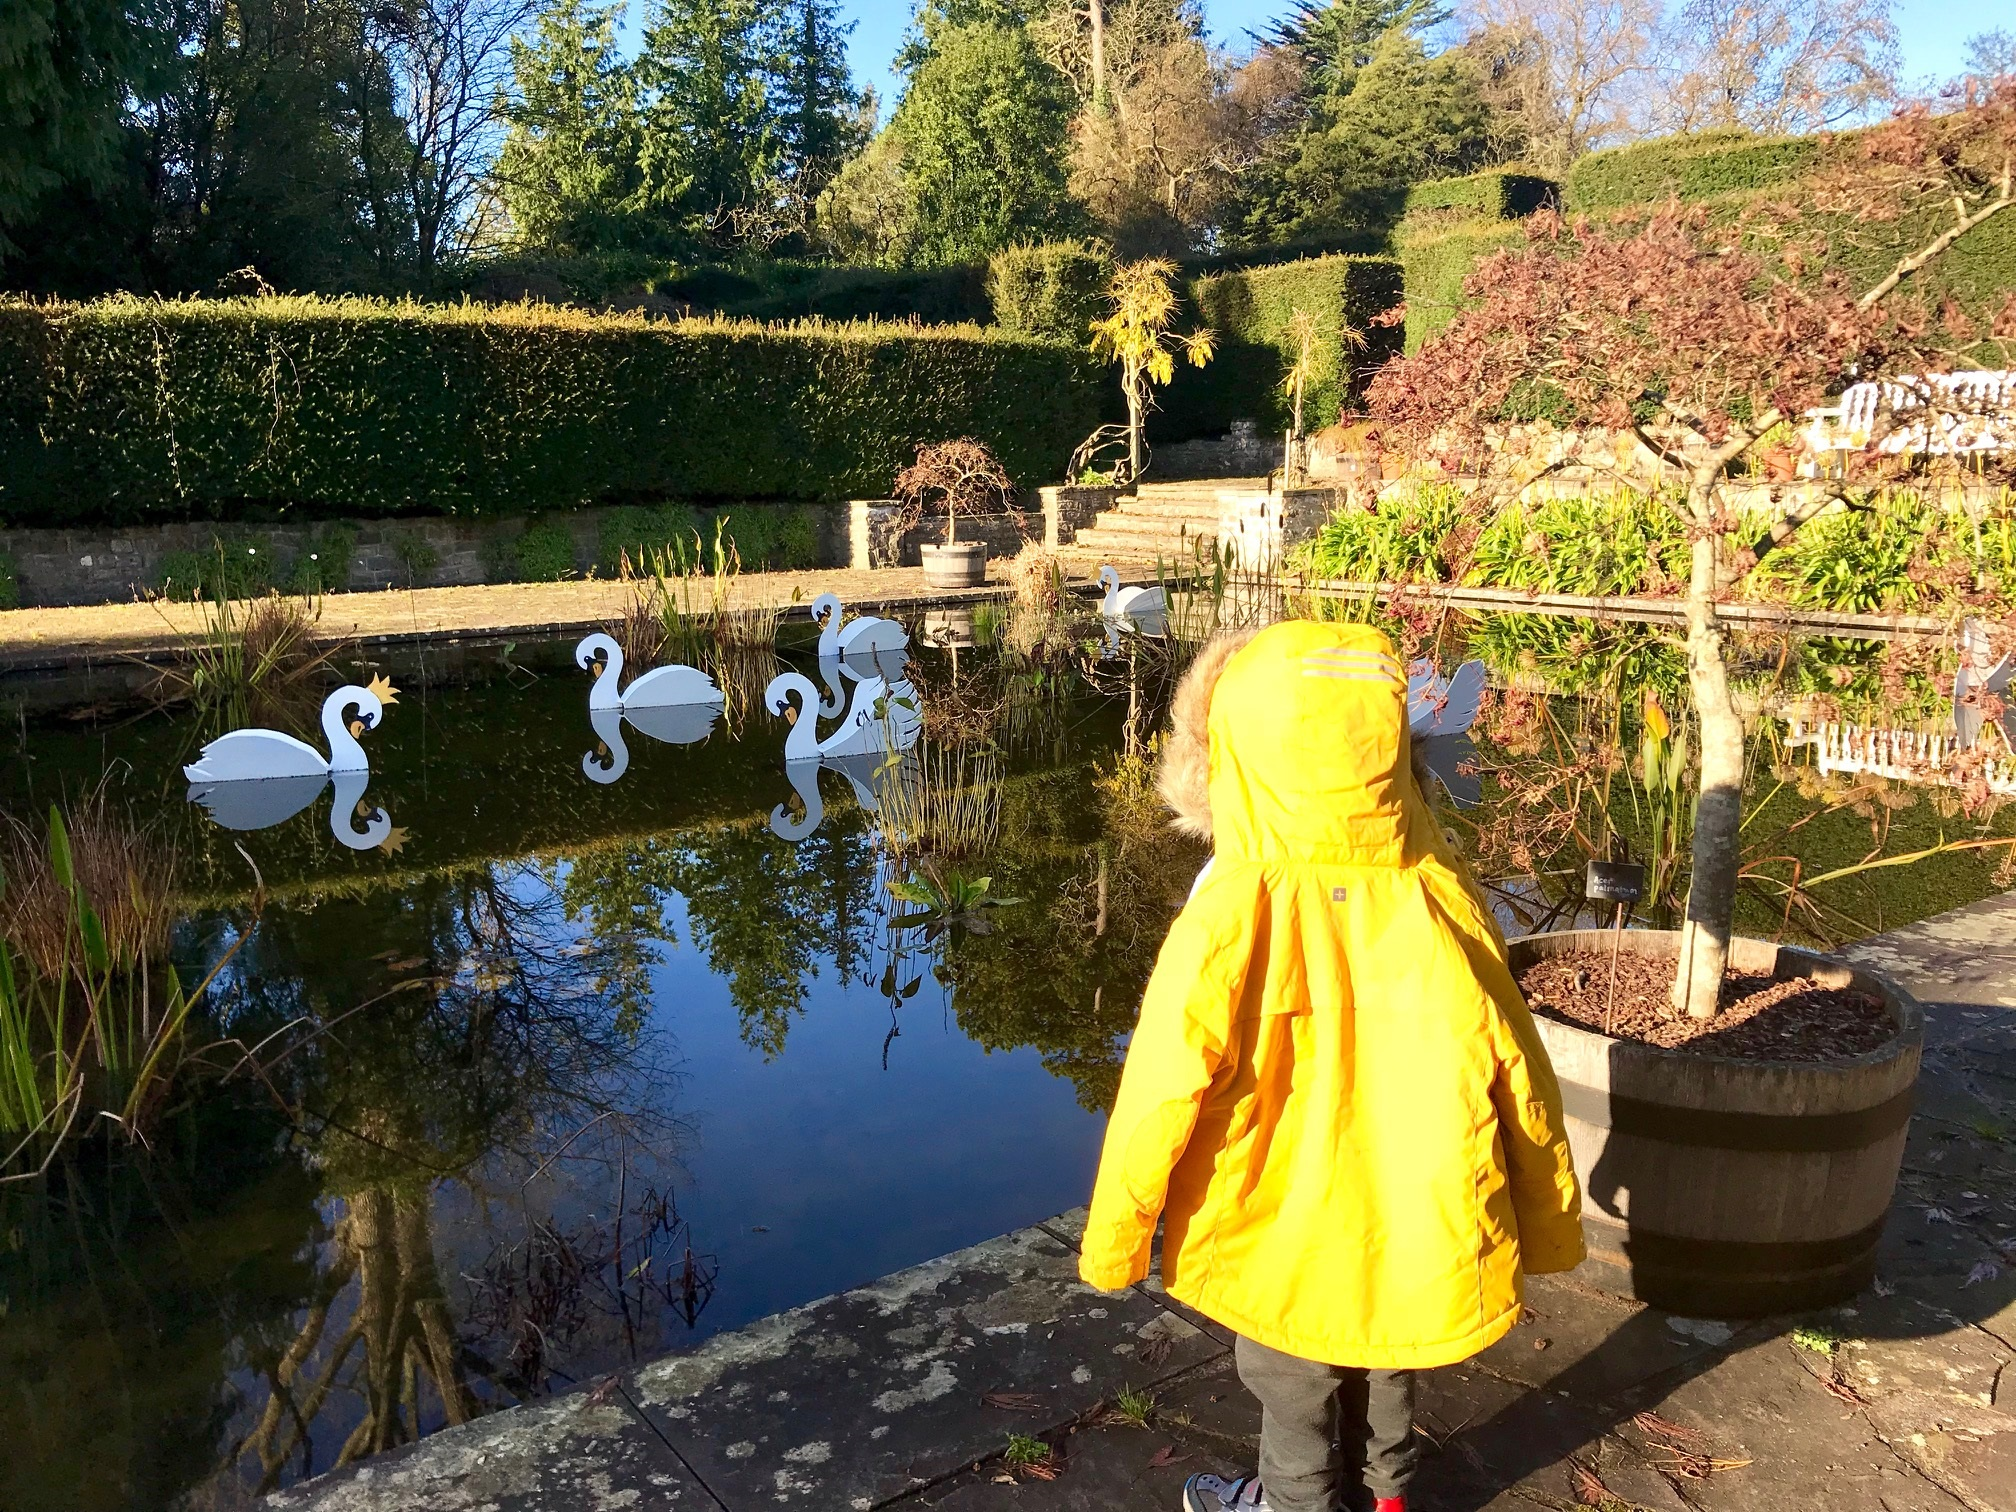 Dyffryn Gardens 12 days of christmas